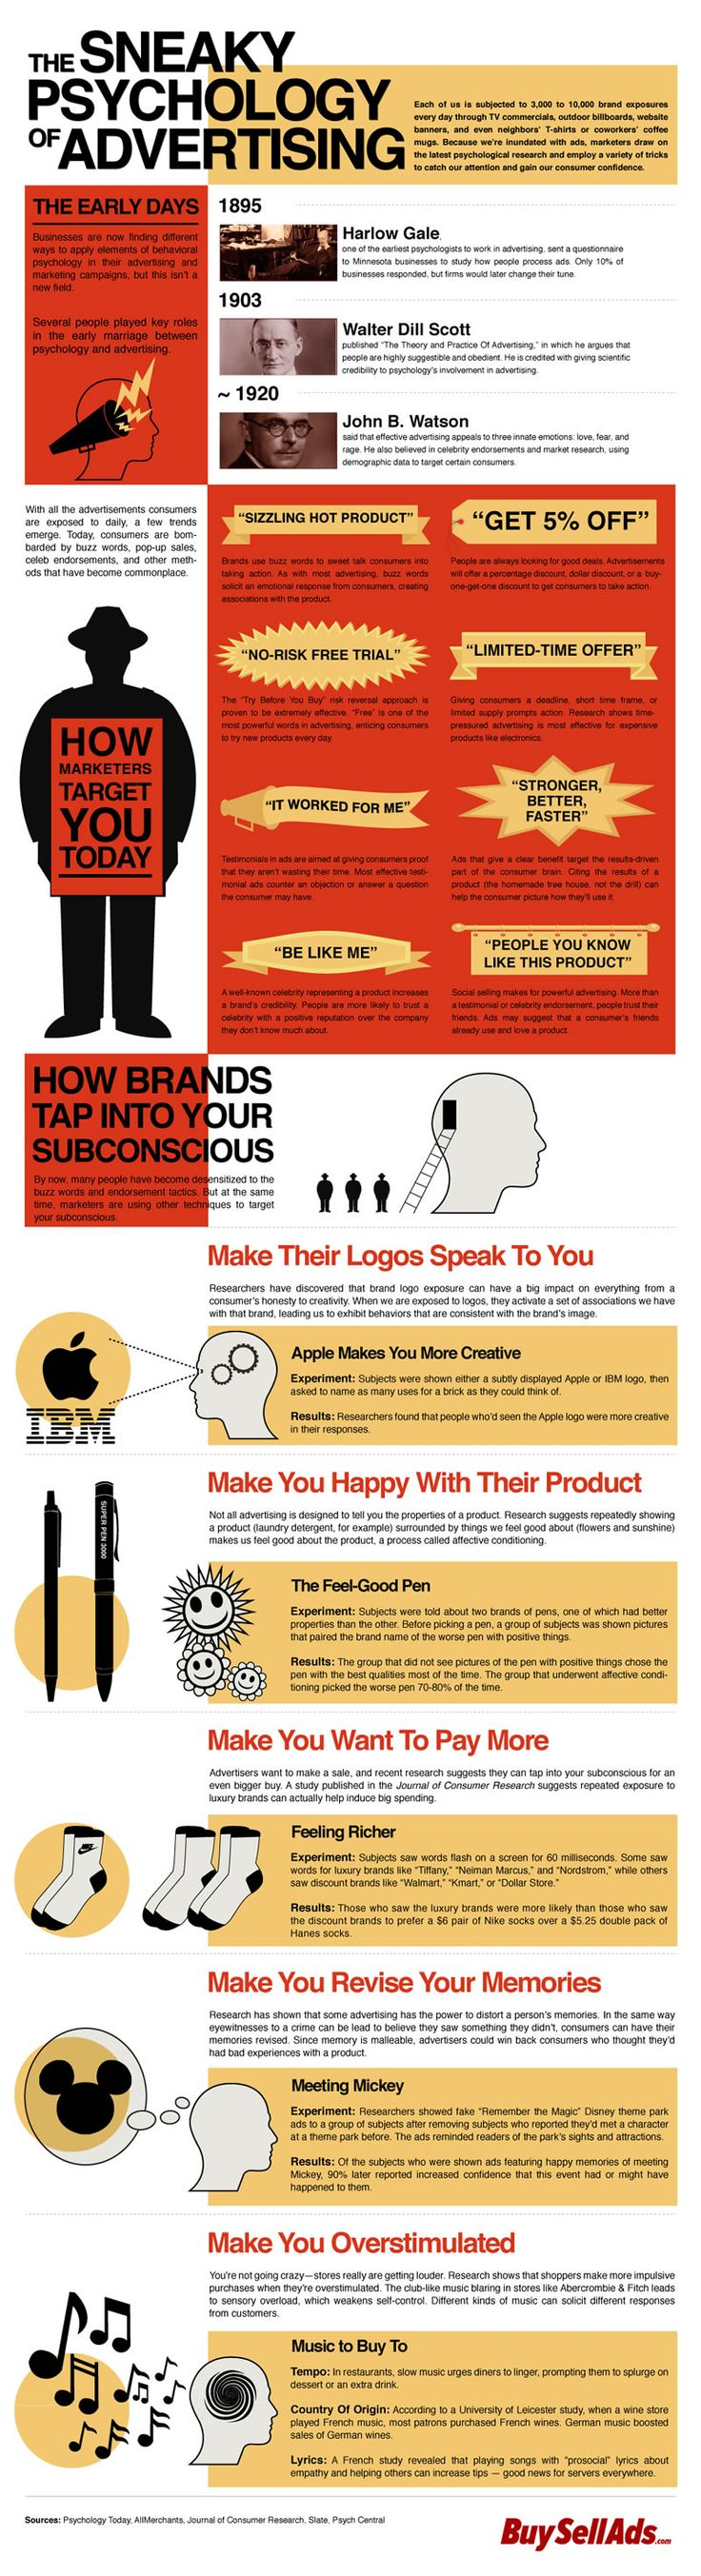 The Sneaky Psychology of Advertising - tricks that advertisers use to get the consumers attention.